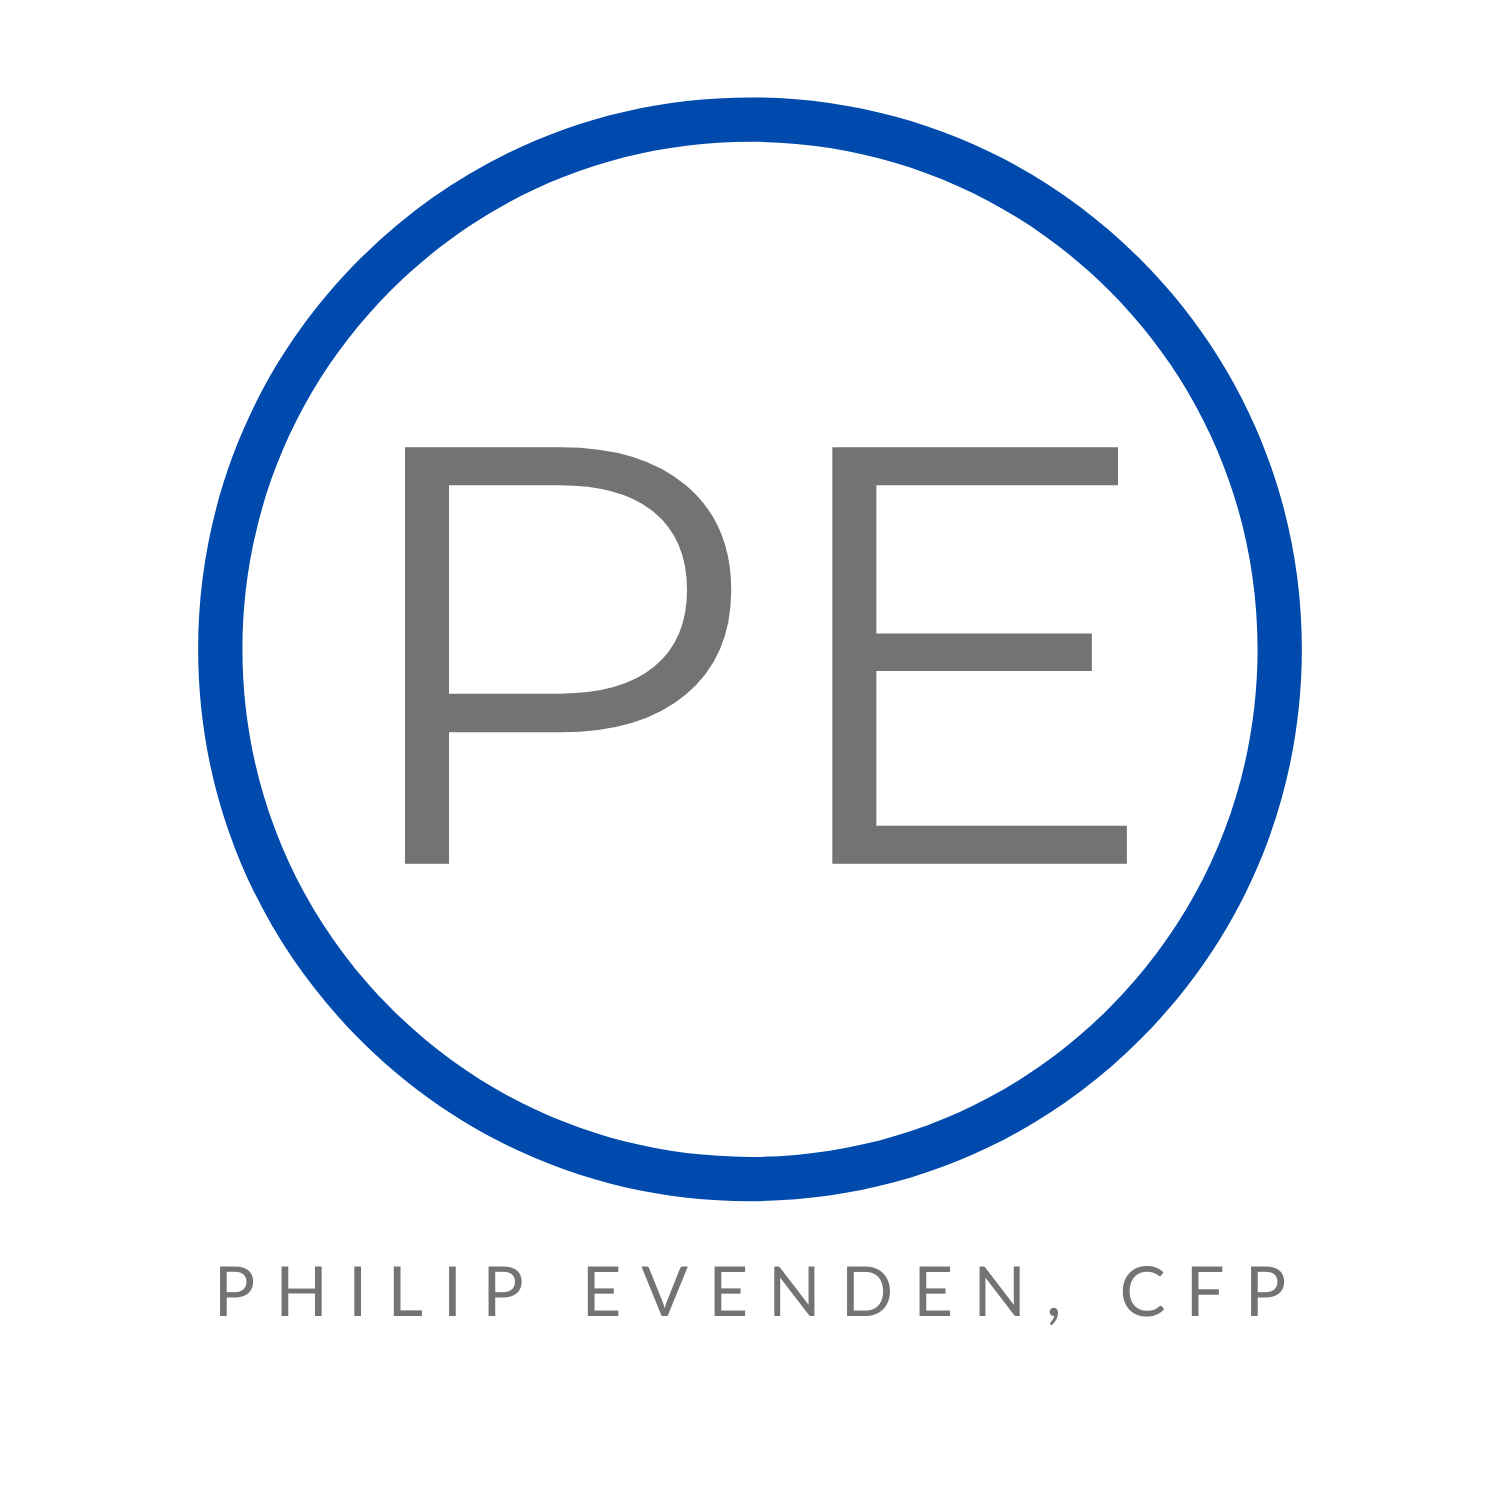 Philip Evenden, CFP |Financial Planning for Entrepreneurs